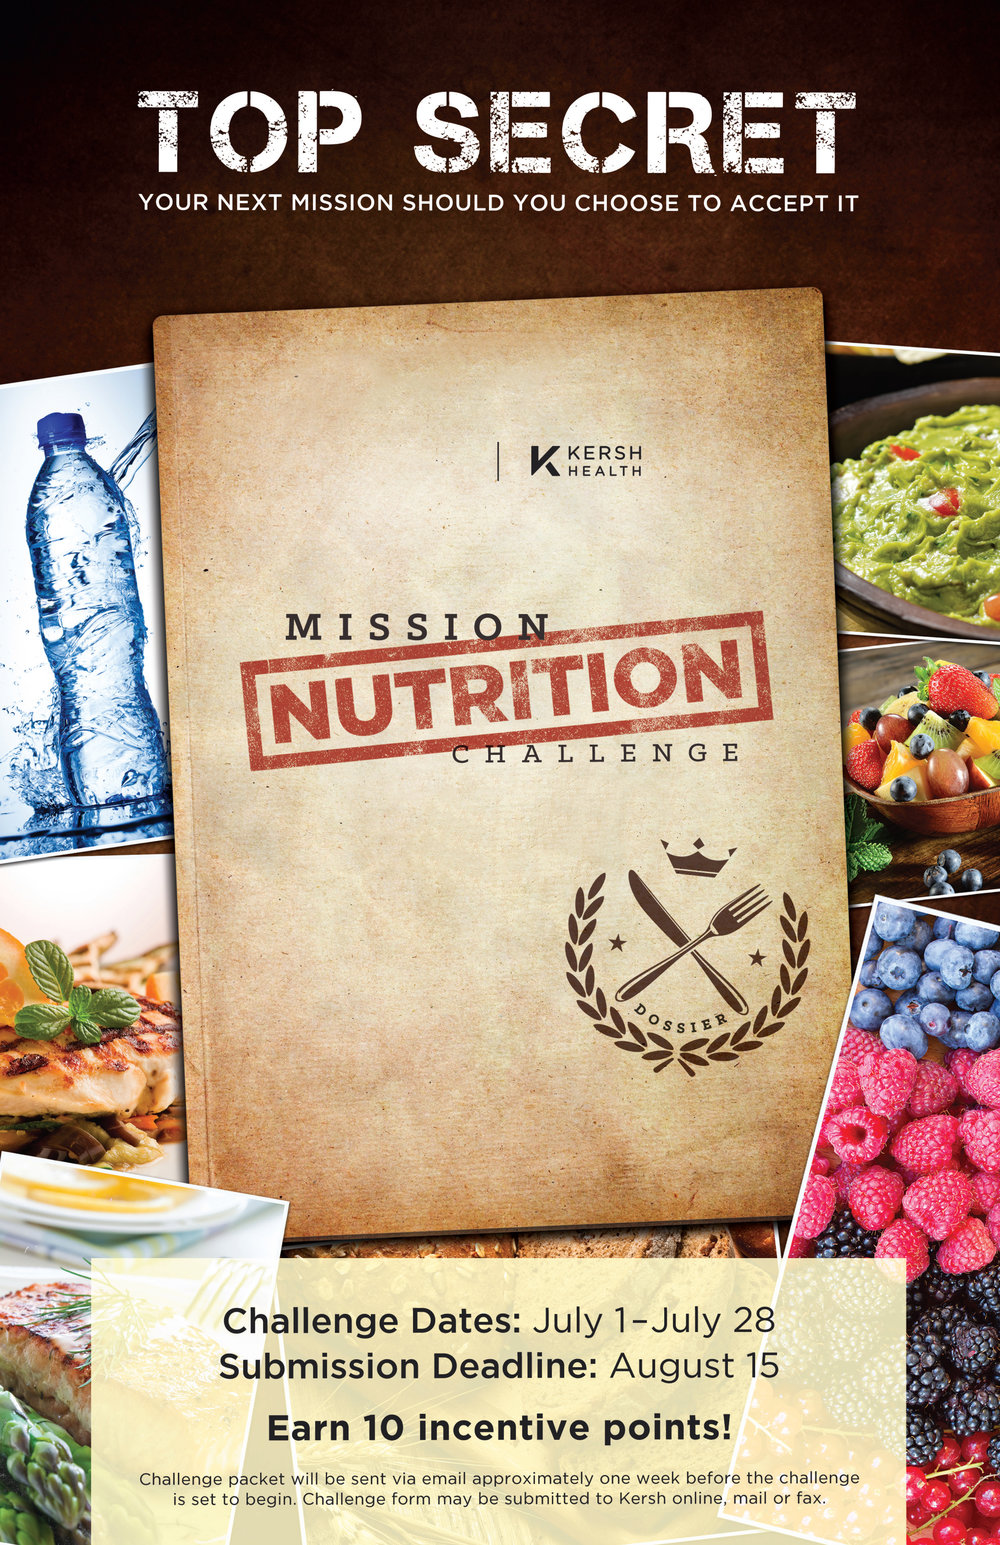 Mission Nutrition Poster.JPG